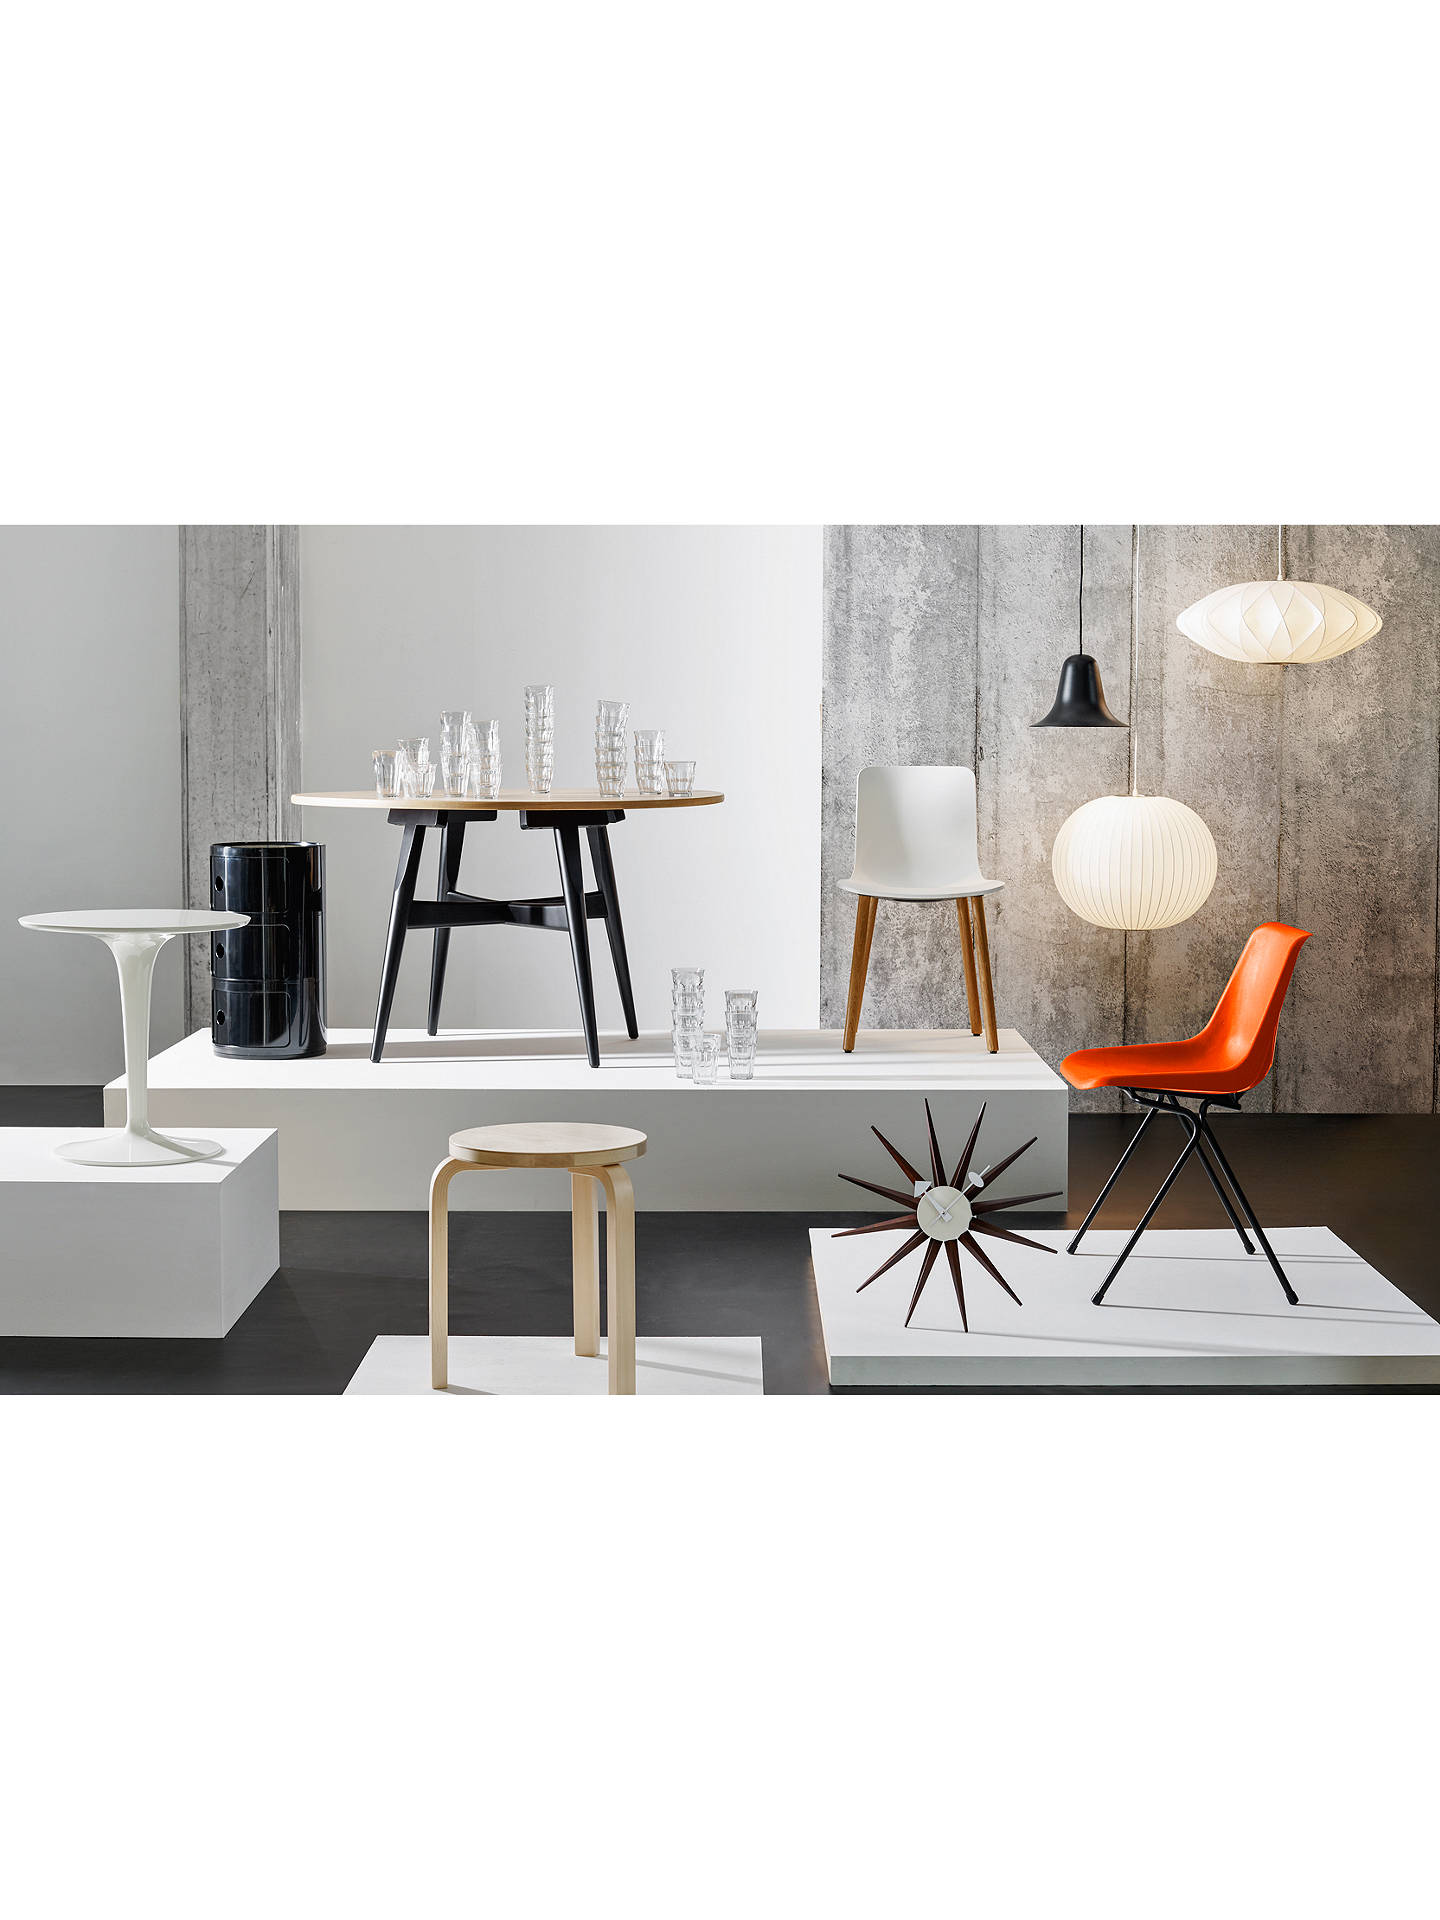 Philippe Starck For Kartell Tip Top Table At John Lewis Partners